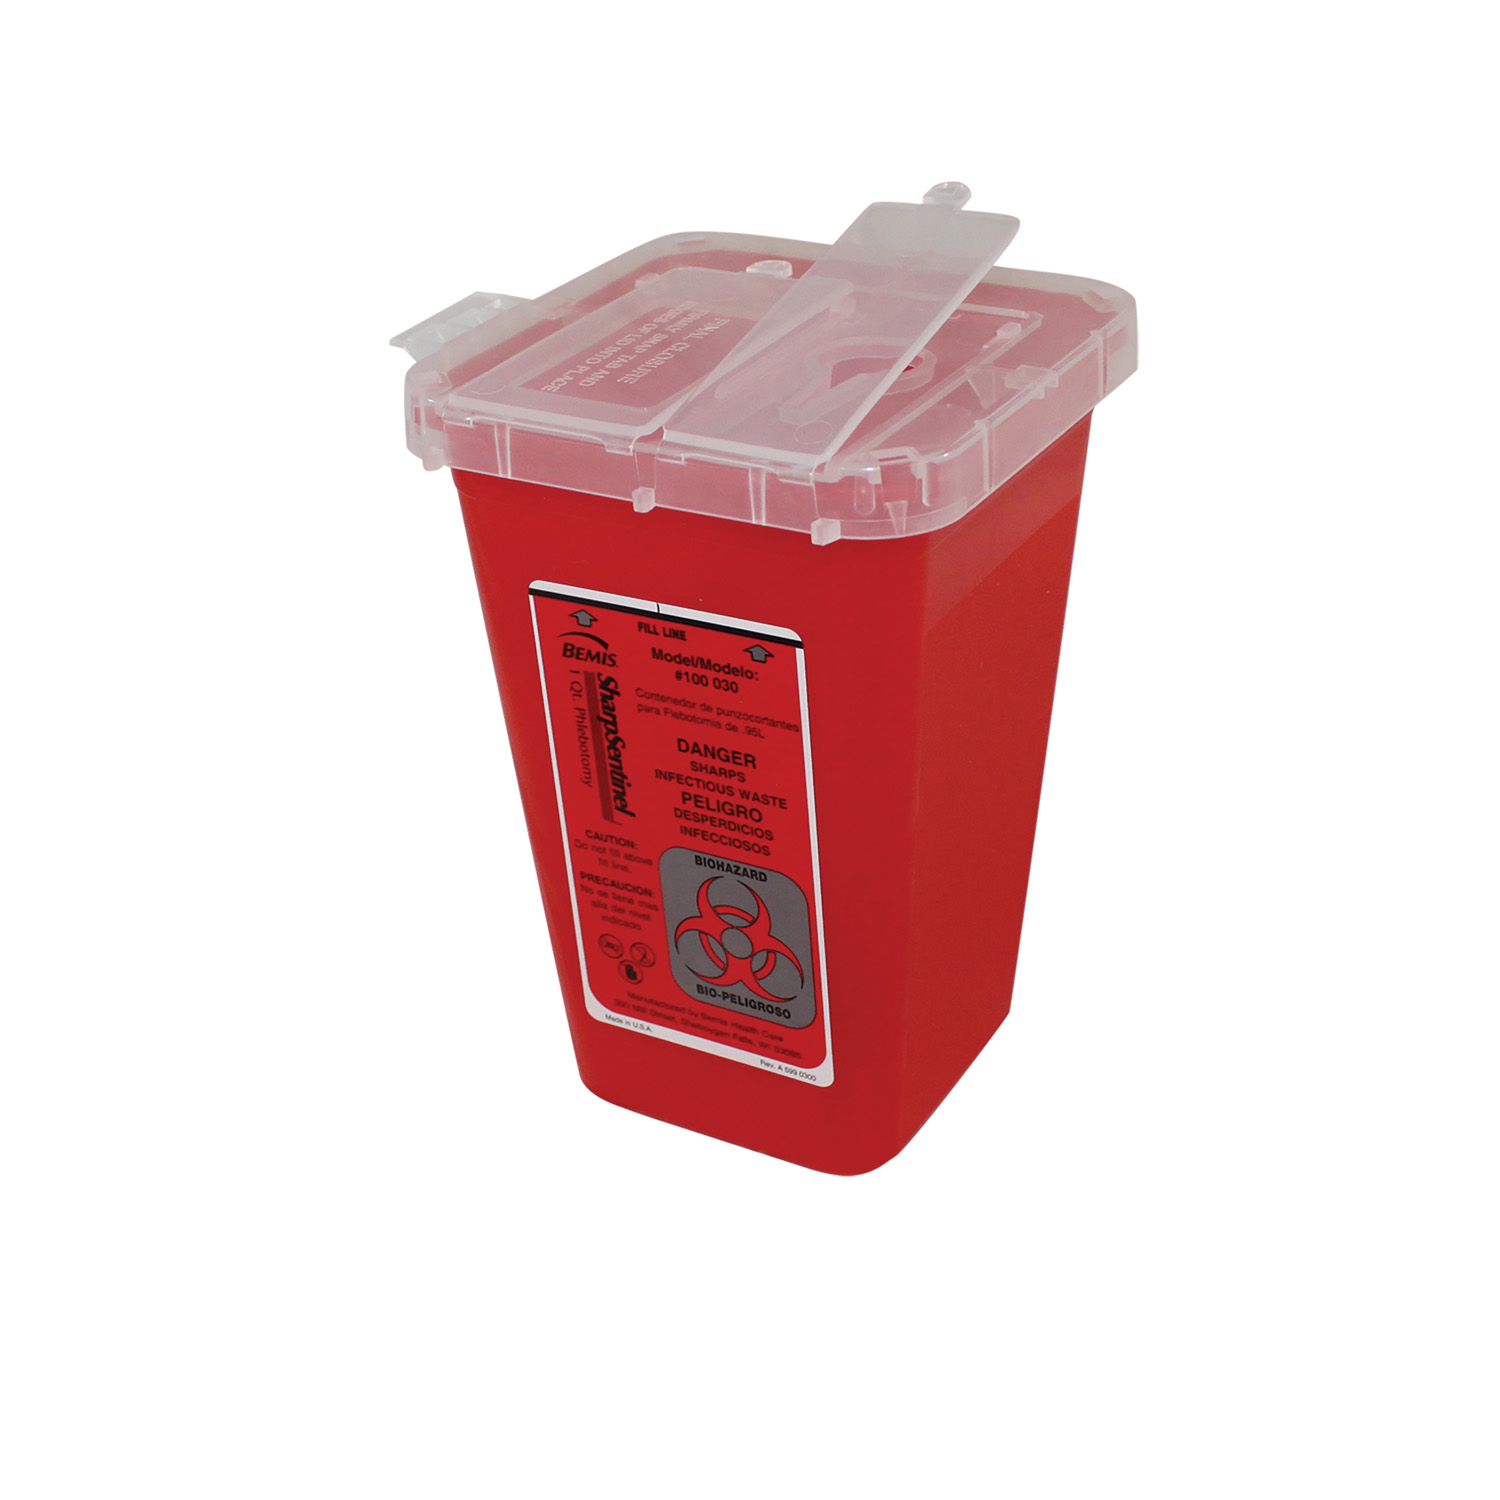 Impact Products 7350 sharps disposal